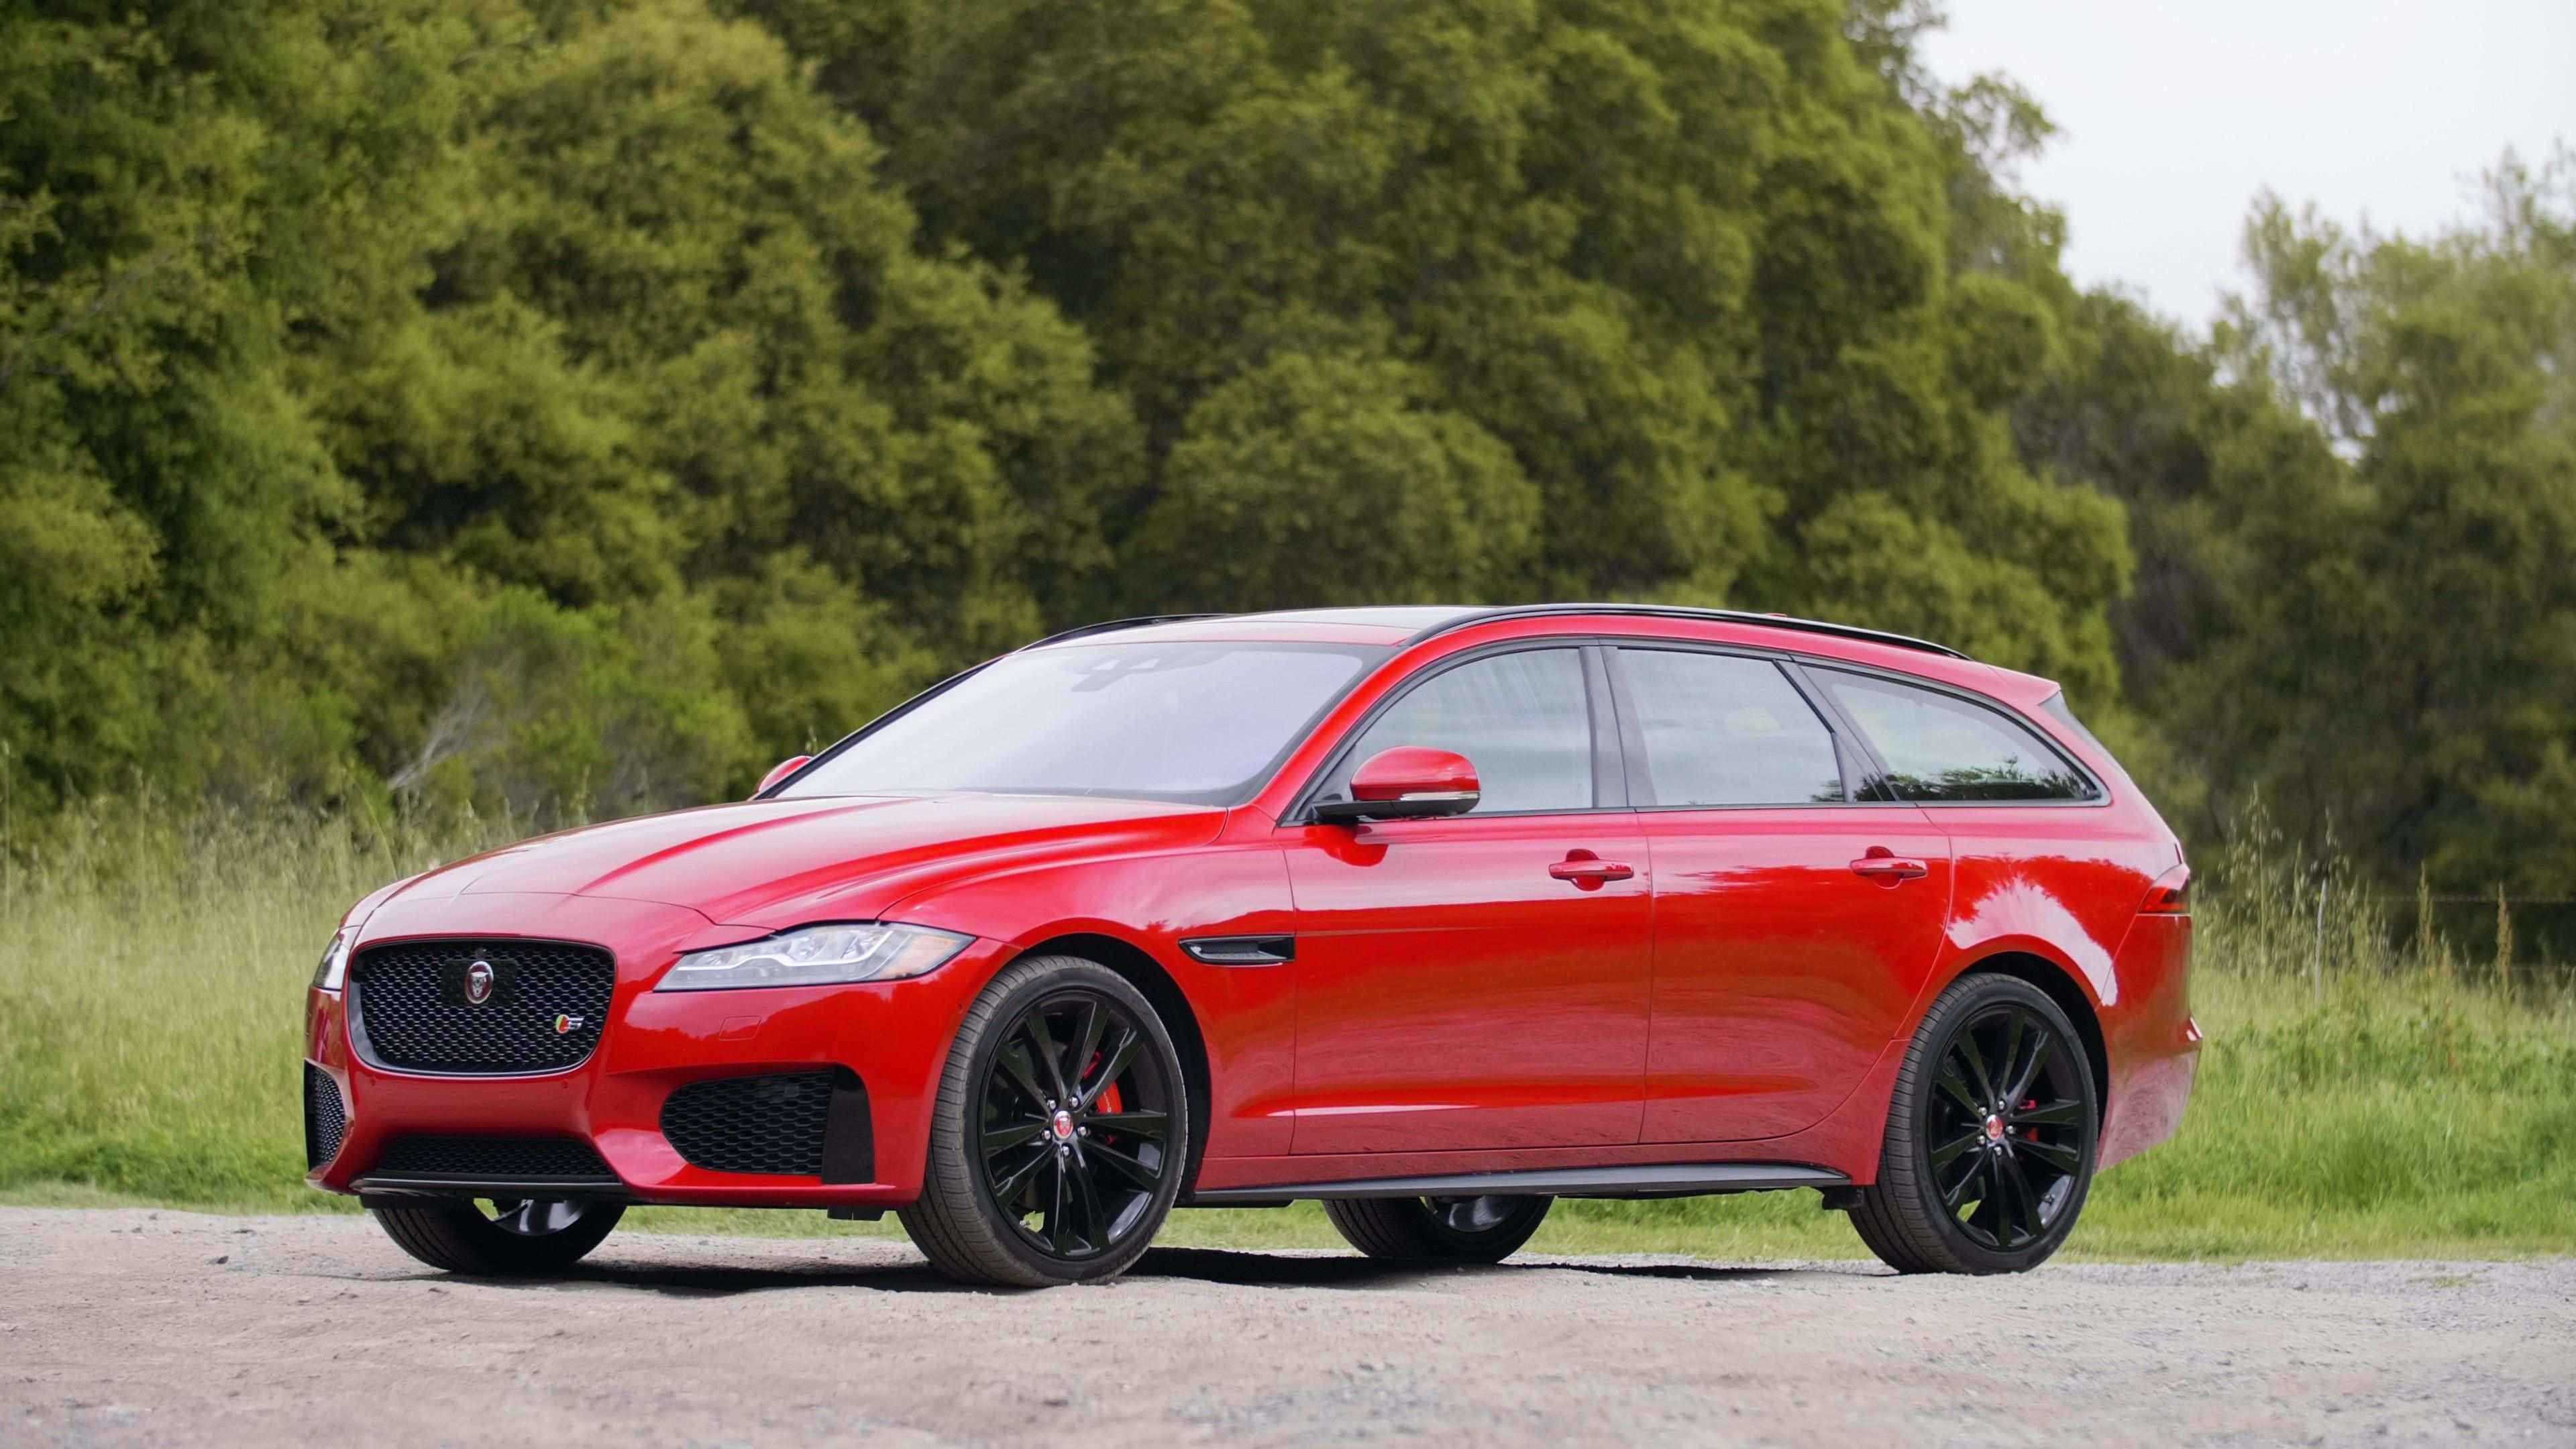 59 All New 2020 Jaguar Station Wagon Price and Review by 2020 Jaguar Station Wagon